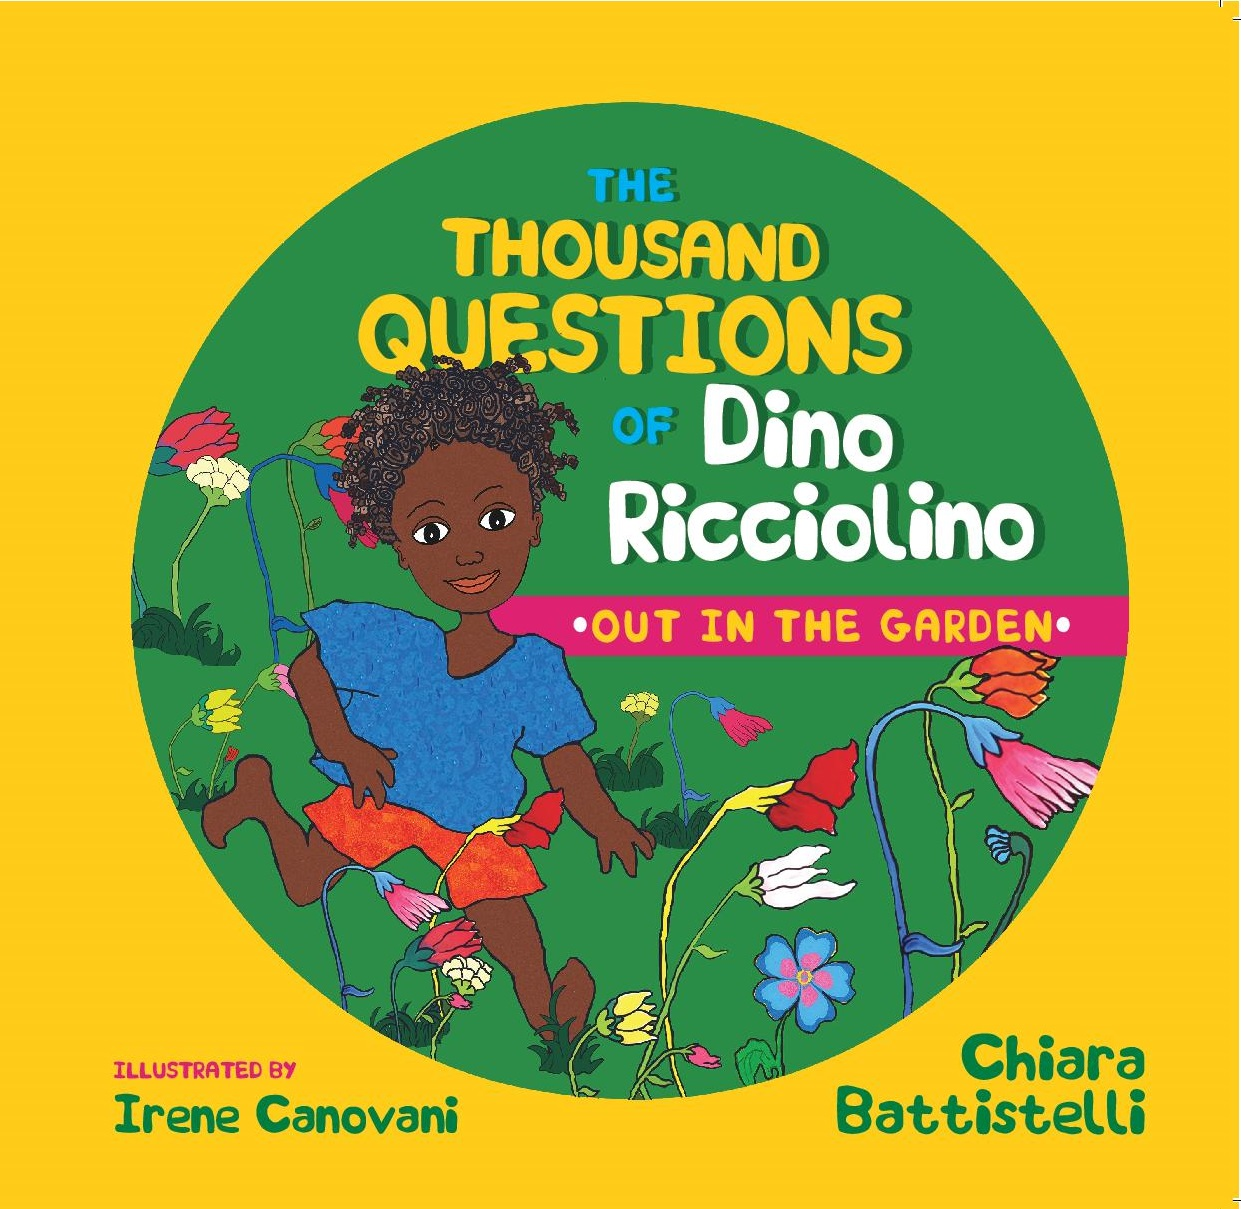 The Thousand Questions of Dino Ricciolino: Out in the Garden